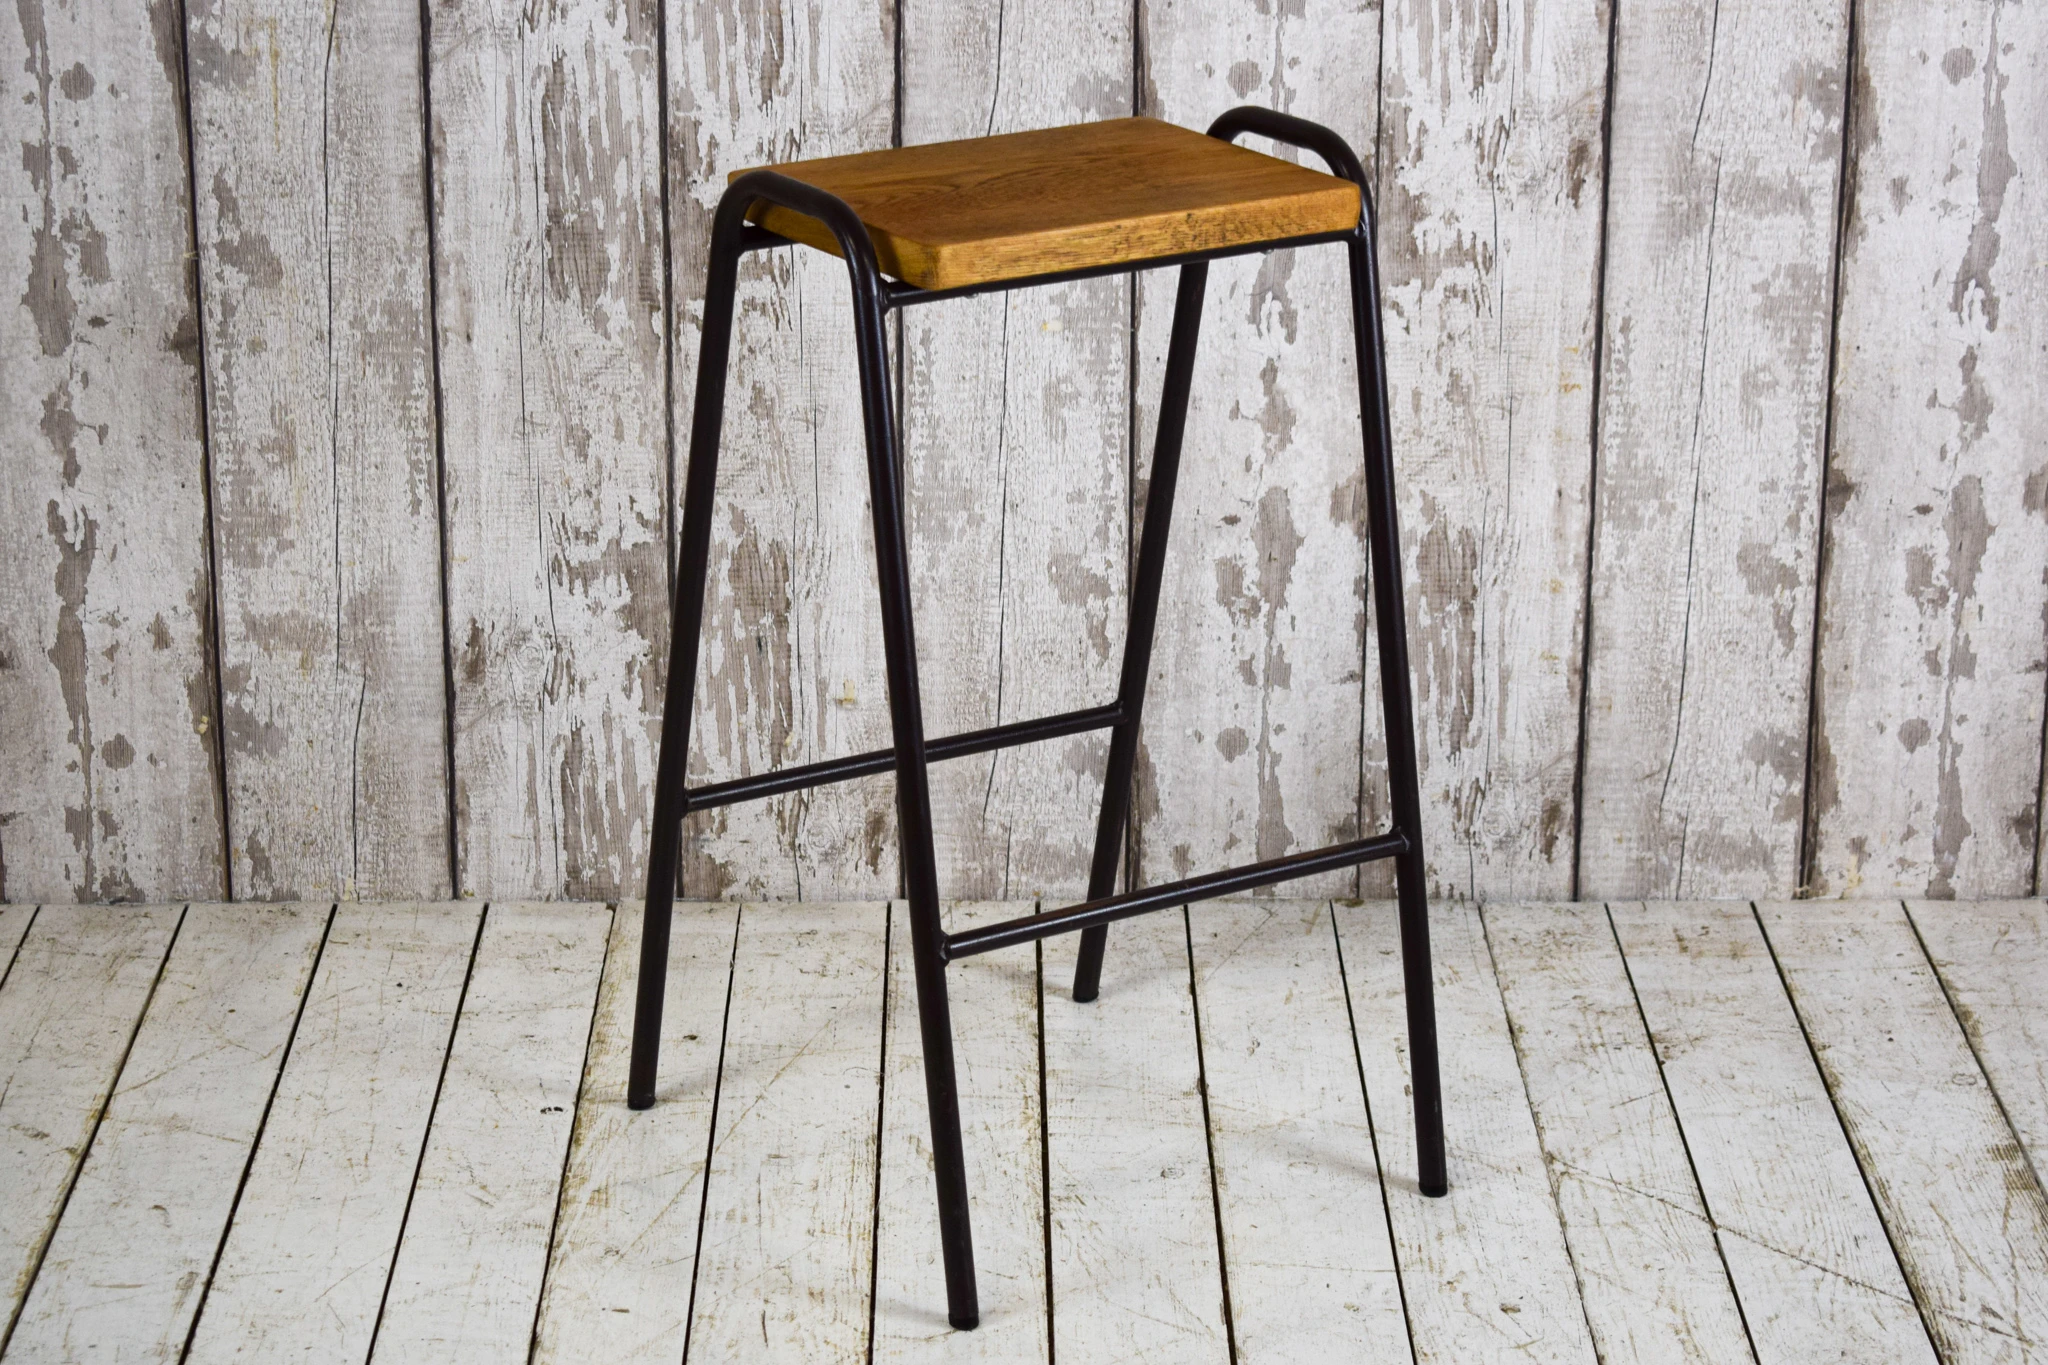 40 Available Vintage Industrial Stacking Cafe Bar Chairs